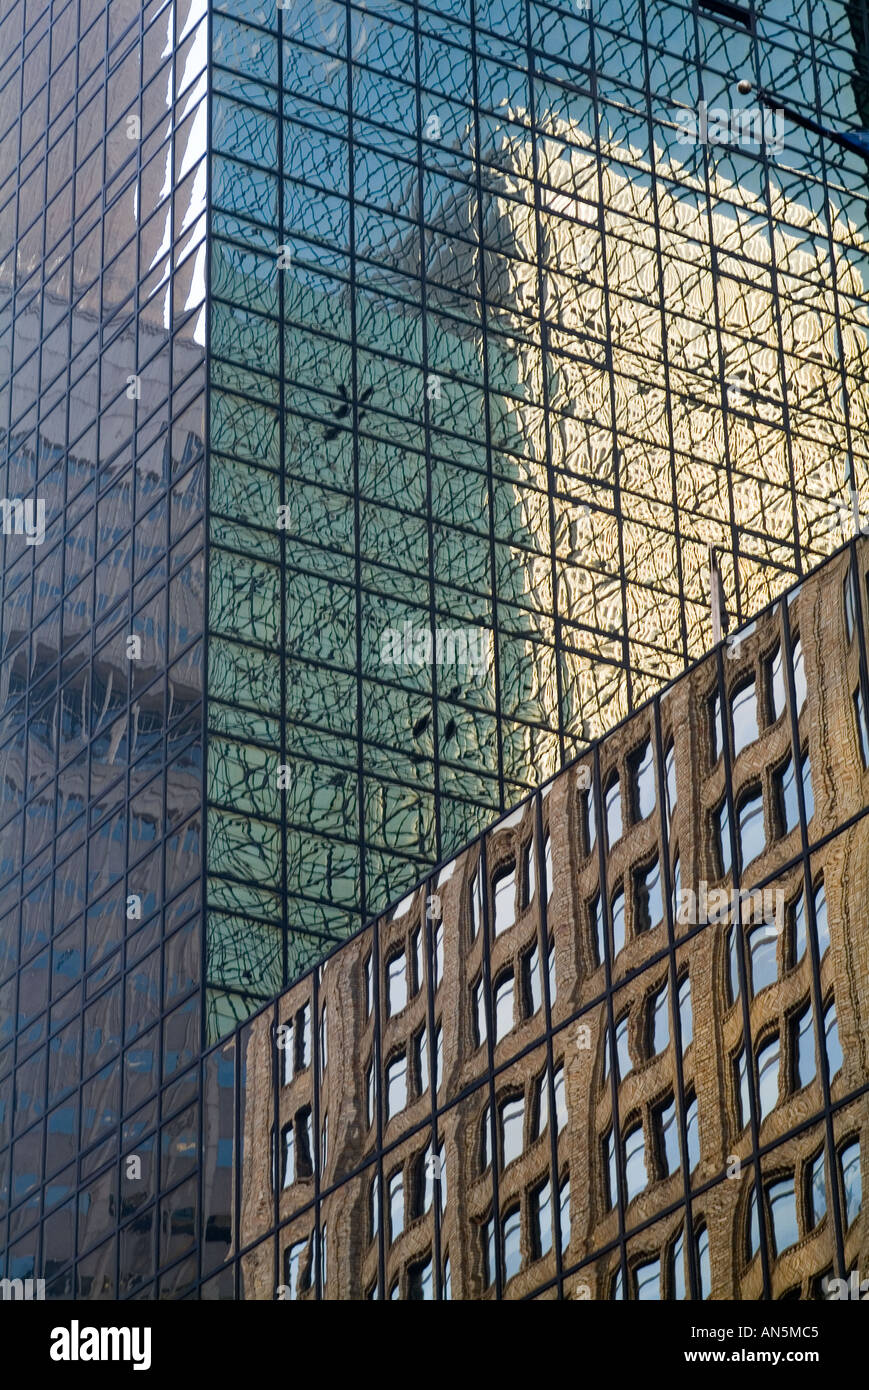 New York City Glass Windows And Reflections On Buildings